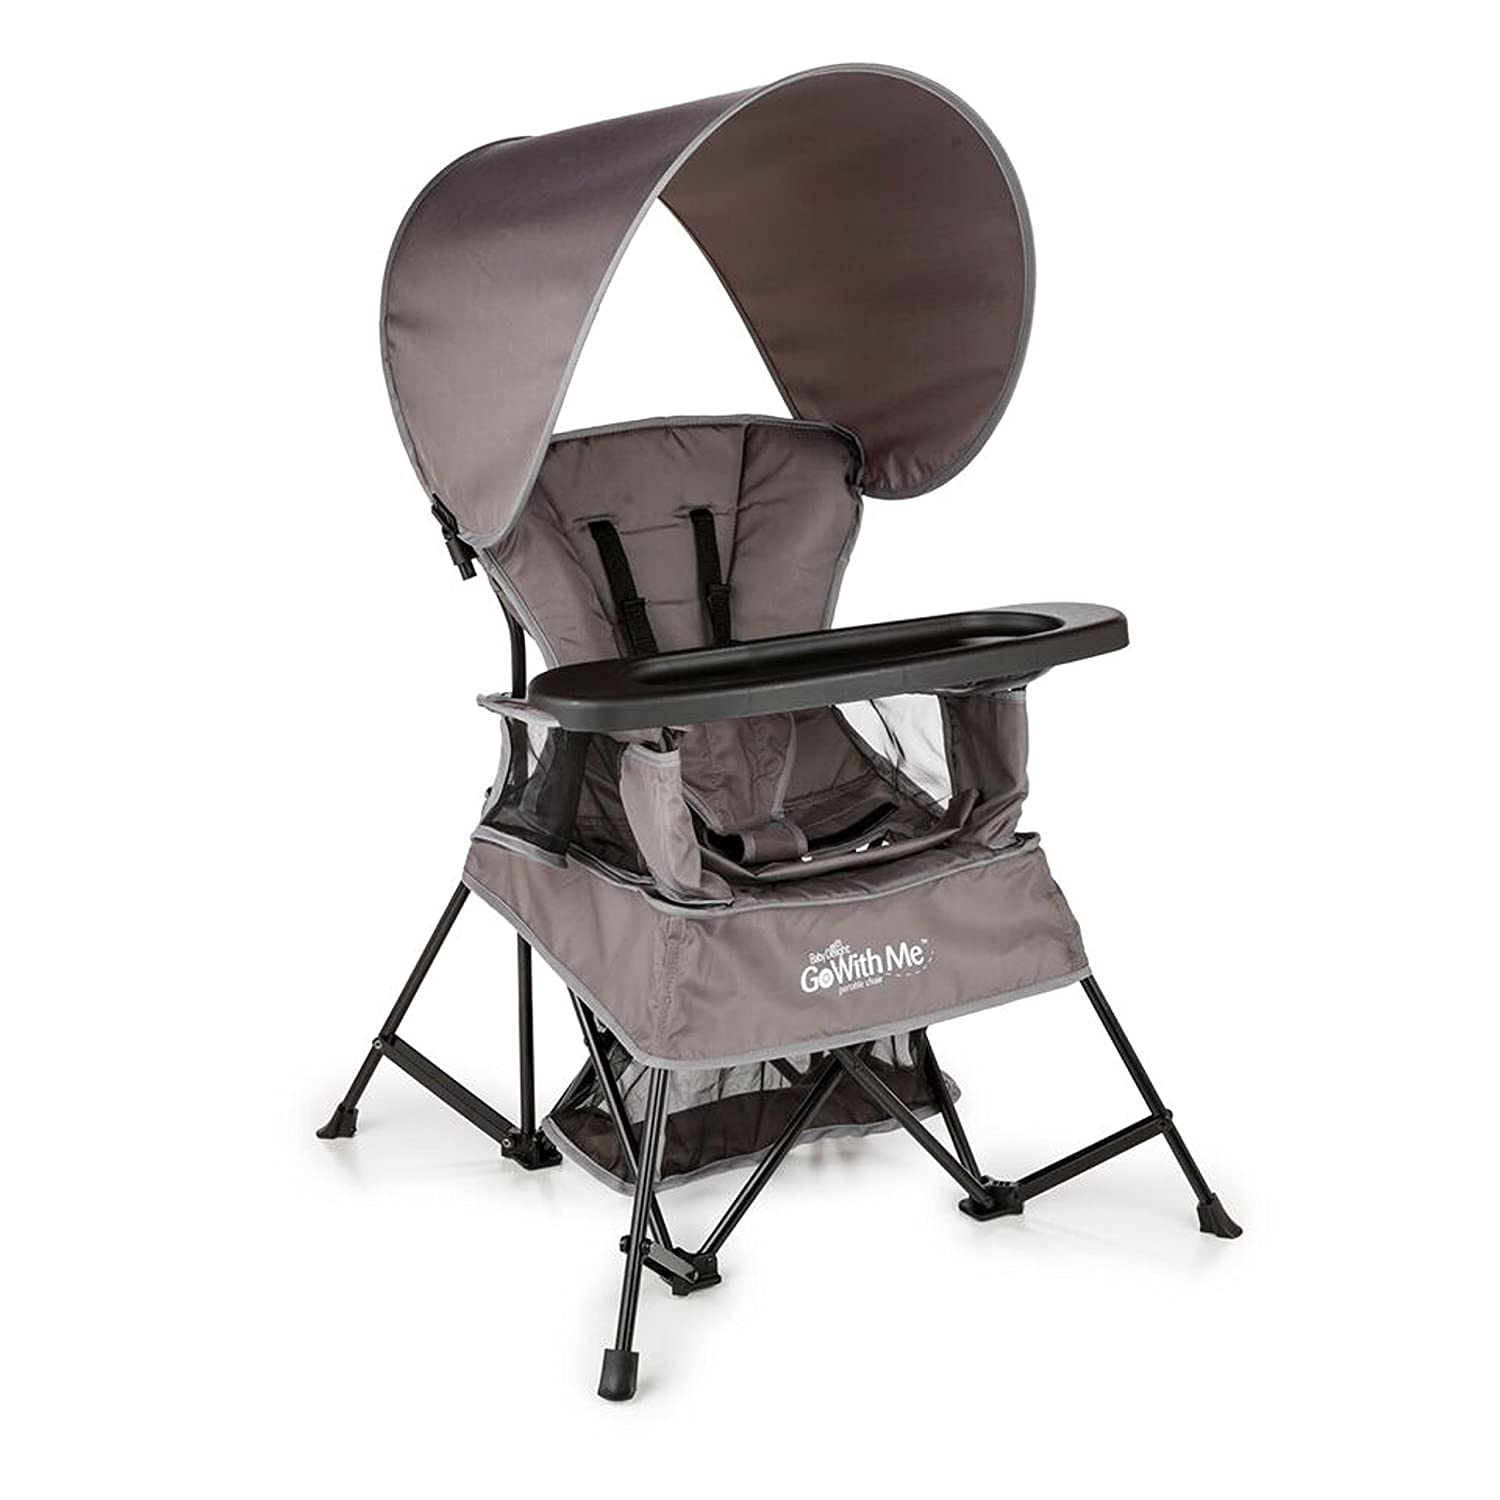 Baby Delight Go With Me Chair, Gray BD5030